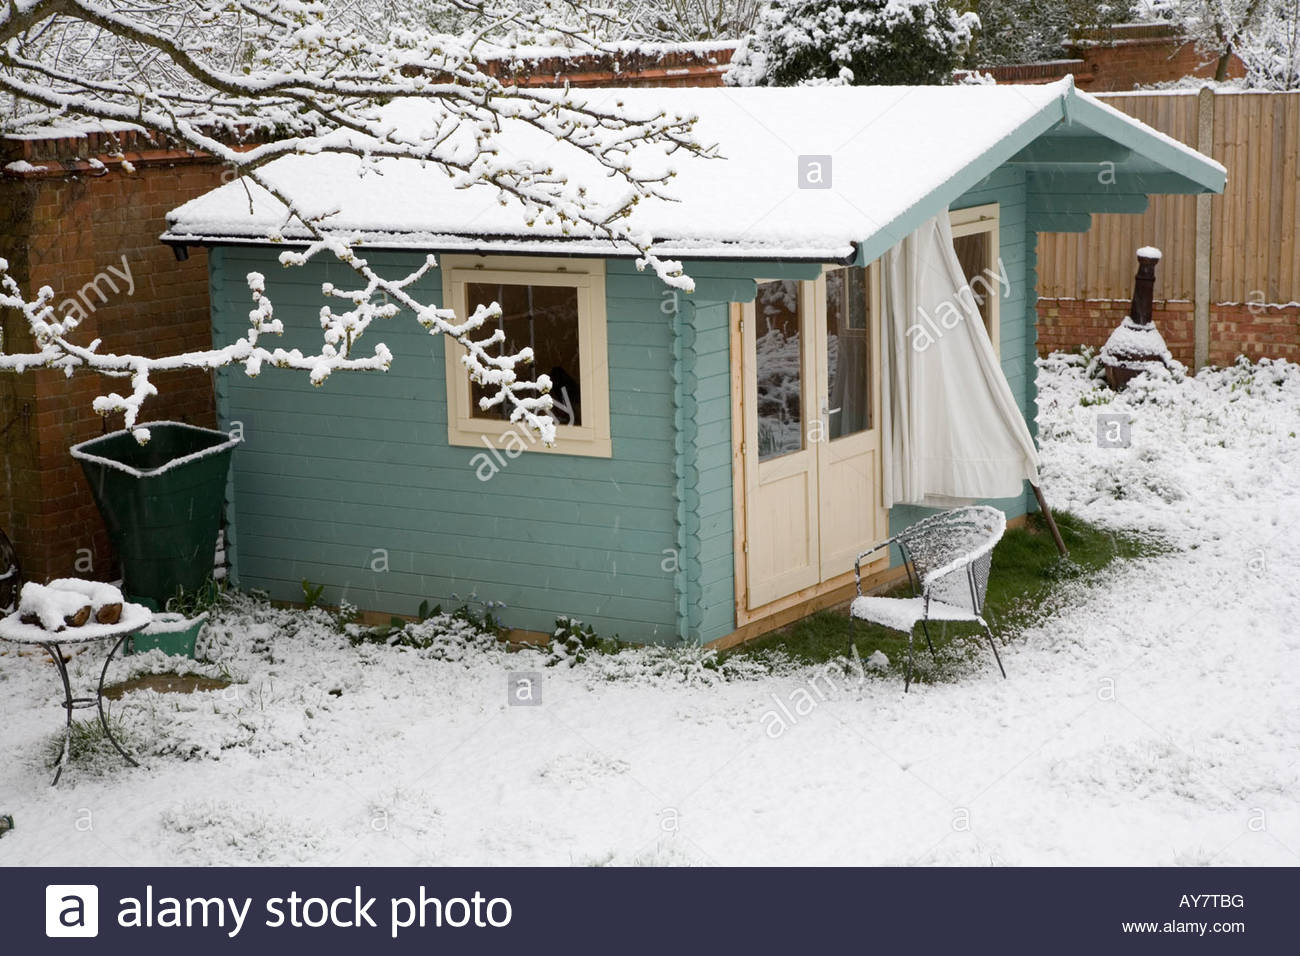 summer house in the snow - Stock Image